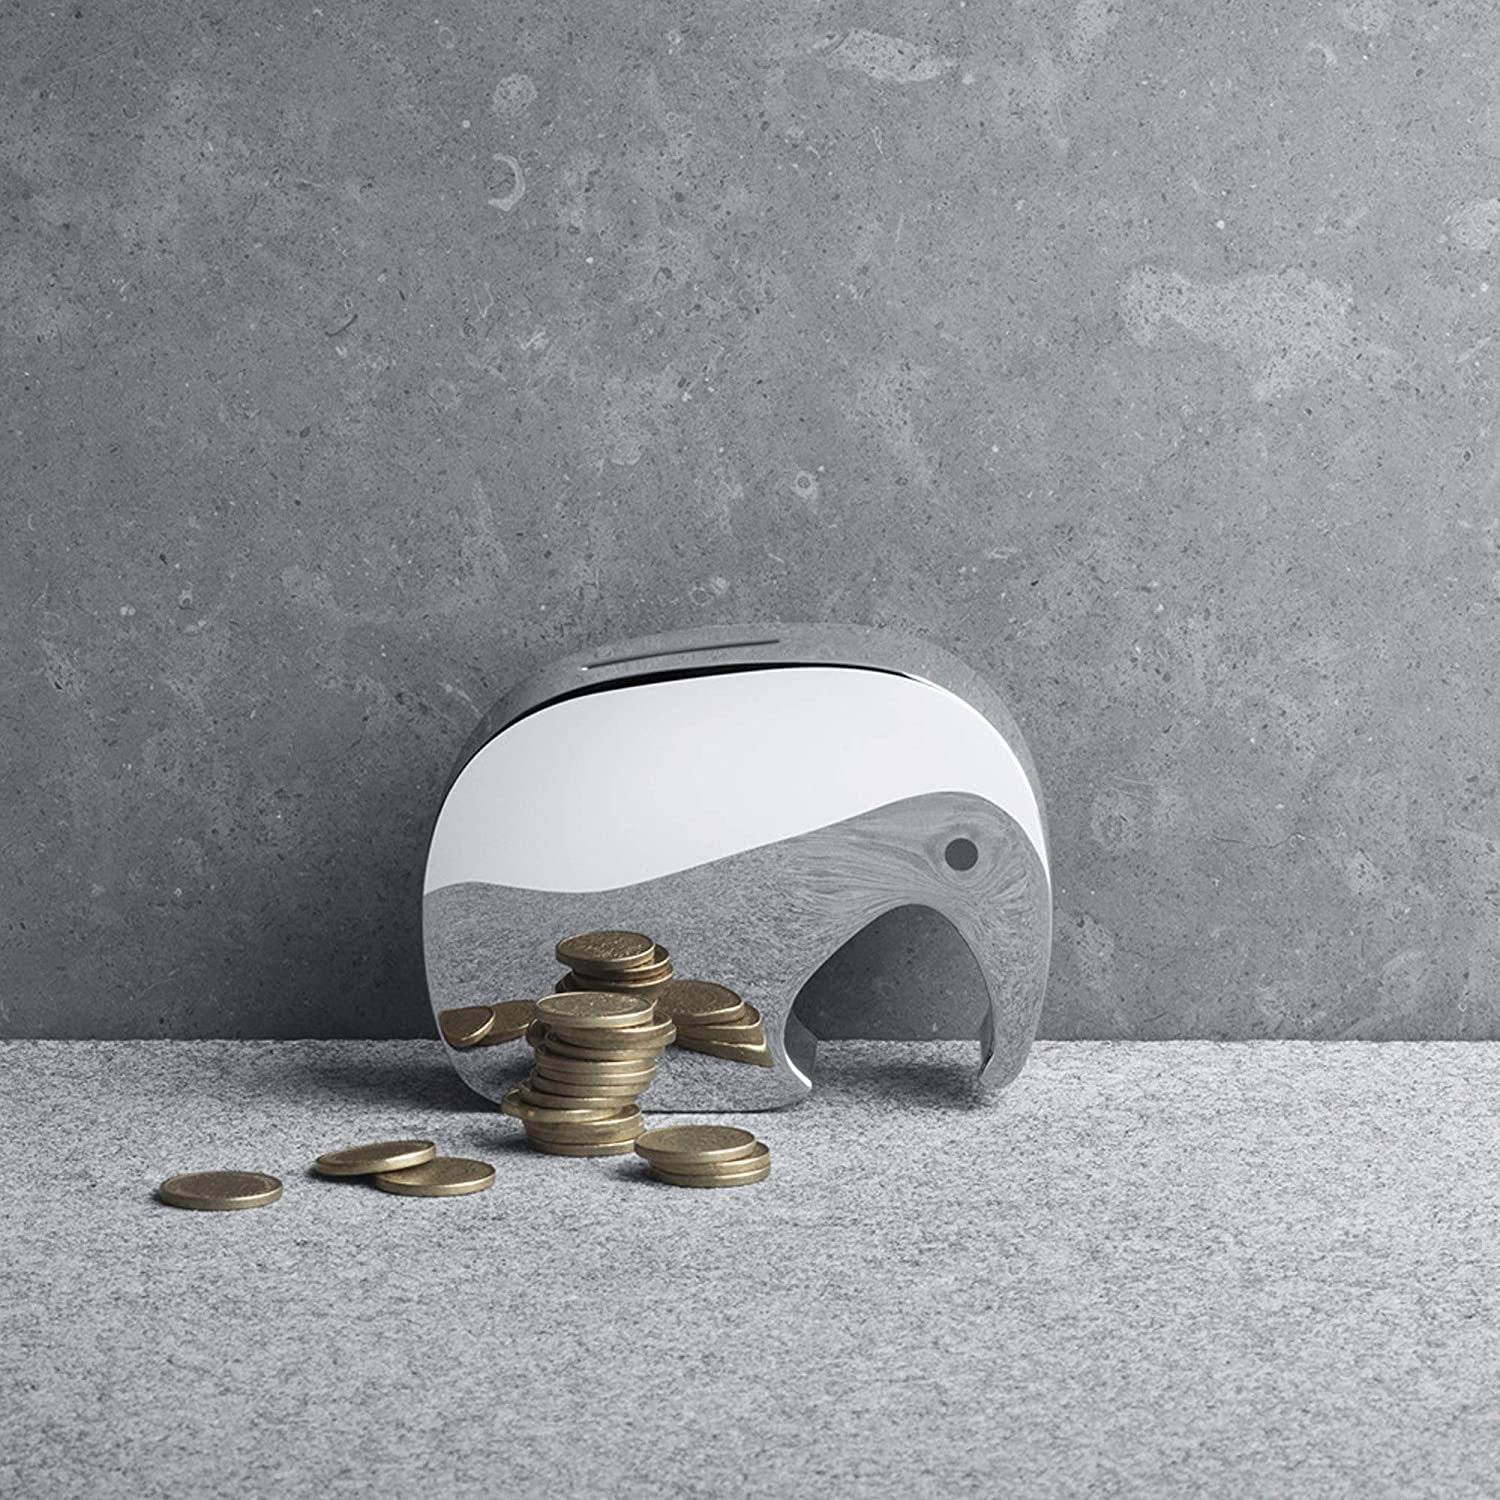 Mirror Polished Stainless Steel By Jørgen Møller Georg Jensen Moneyphant Money Bank Money Boxes